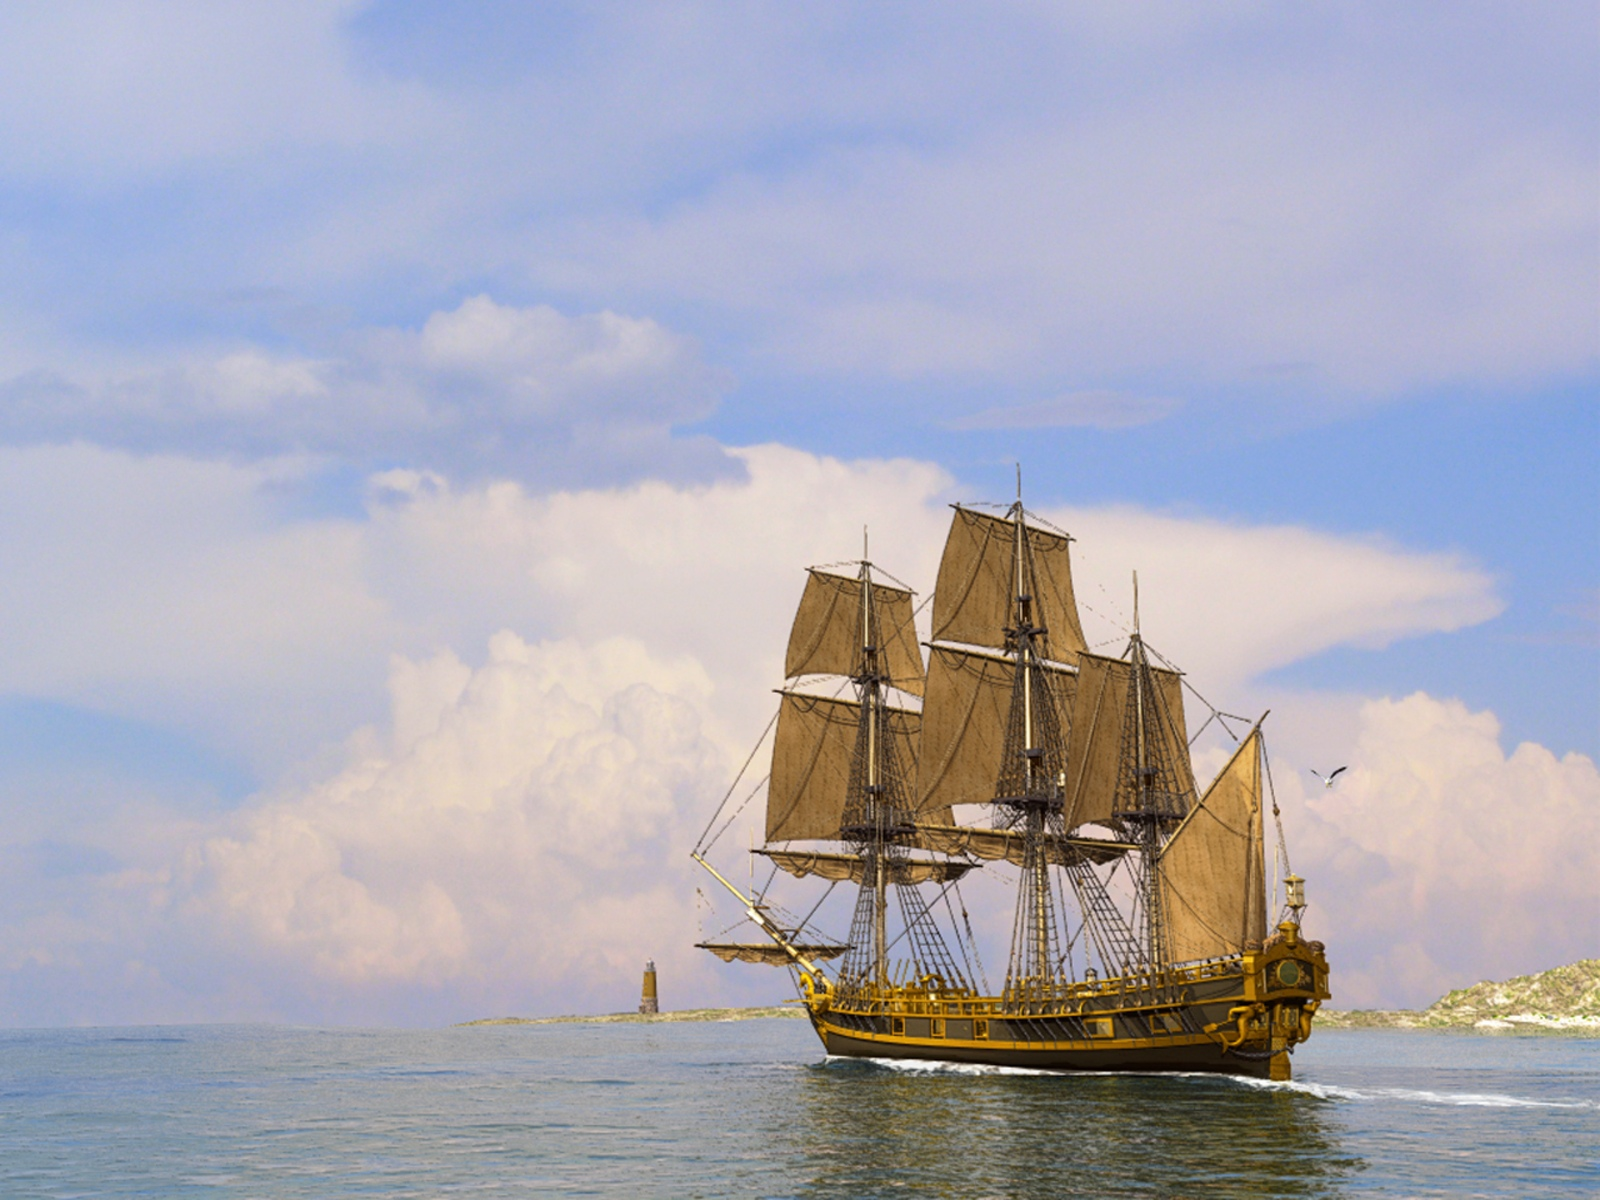 decoration 3D Sailing Ship 1600 x 1200 Pixel HD Wallpapers 1600x1200